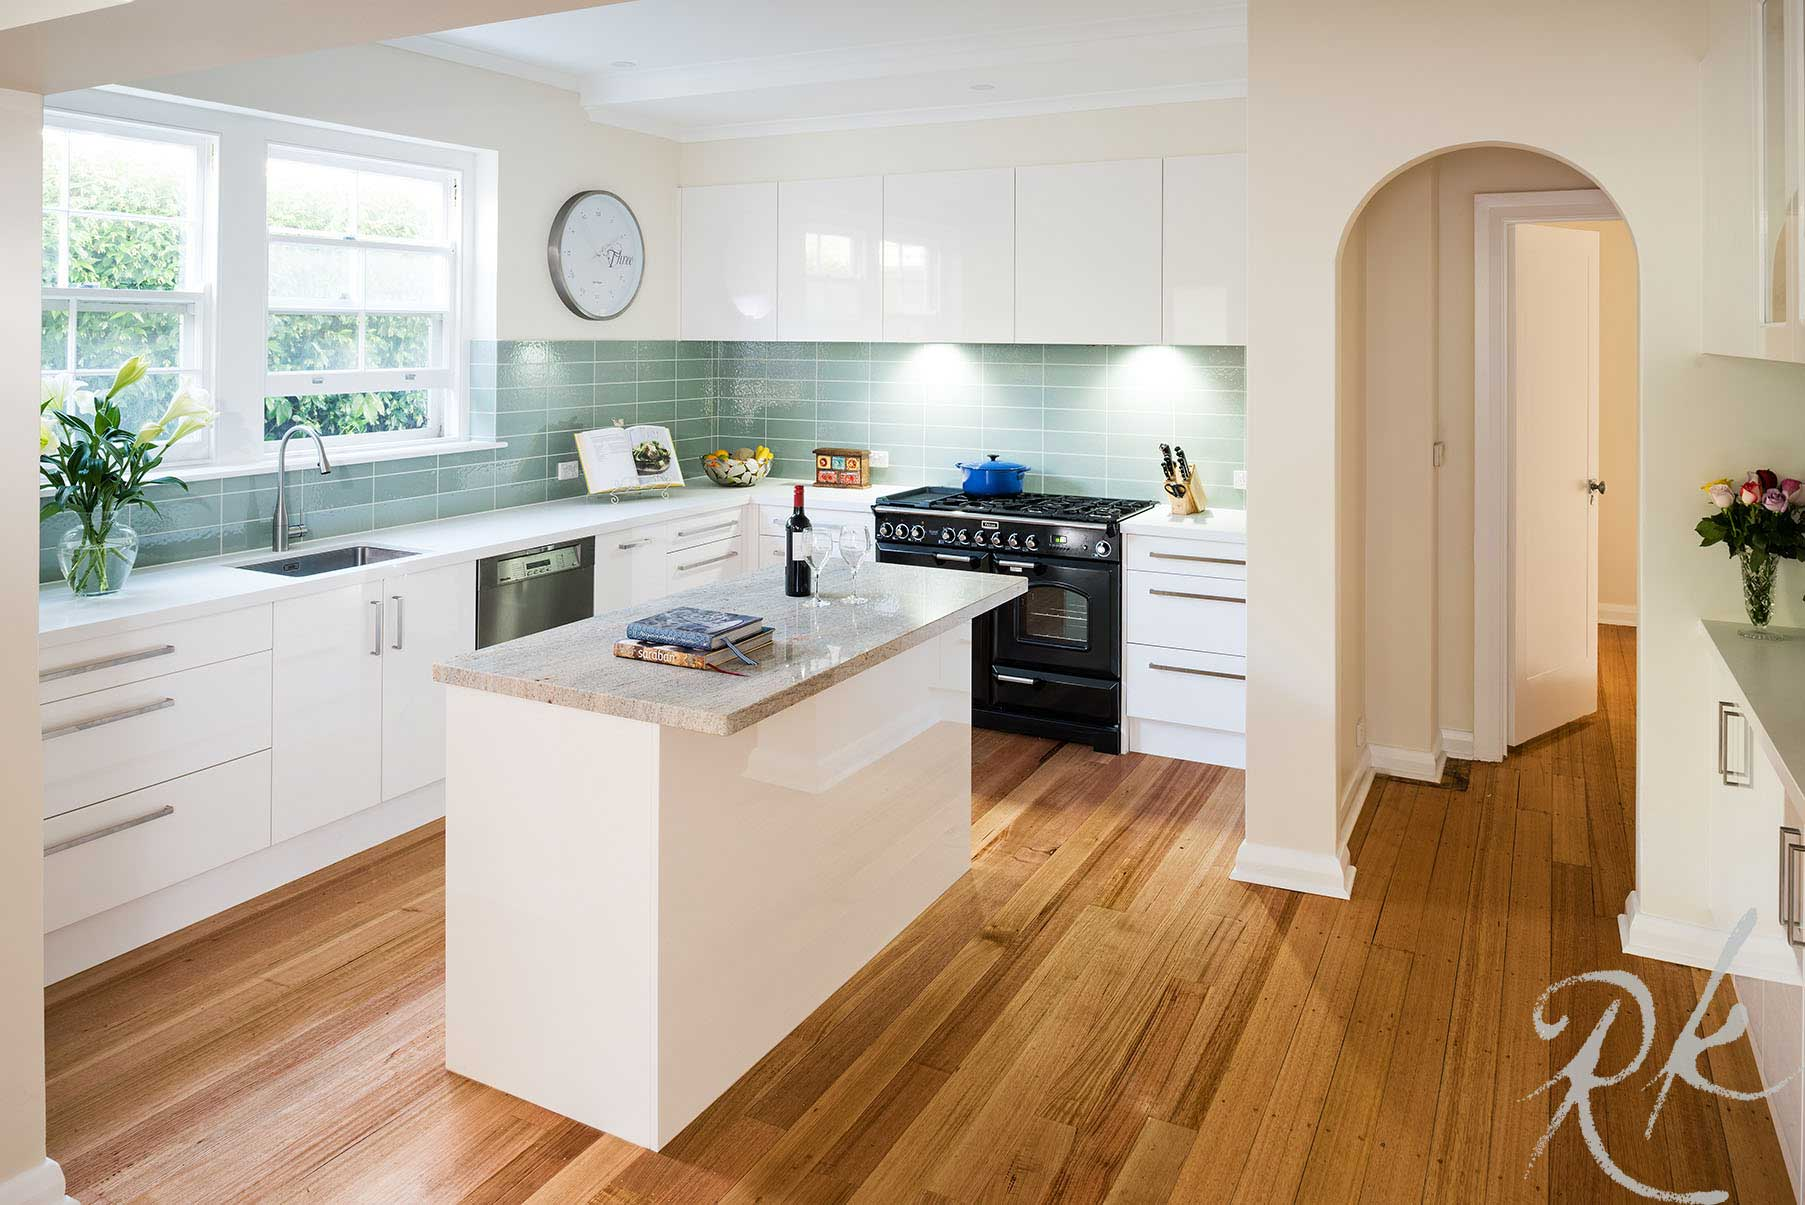 Stylish Kitchen Renovation in Toorak